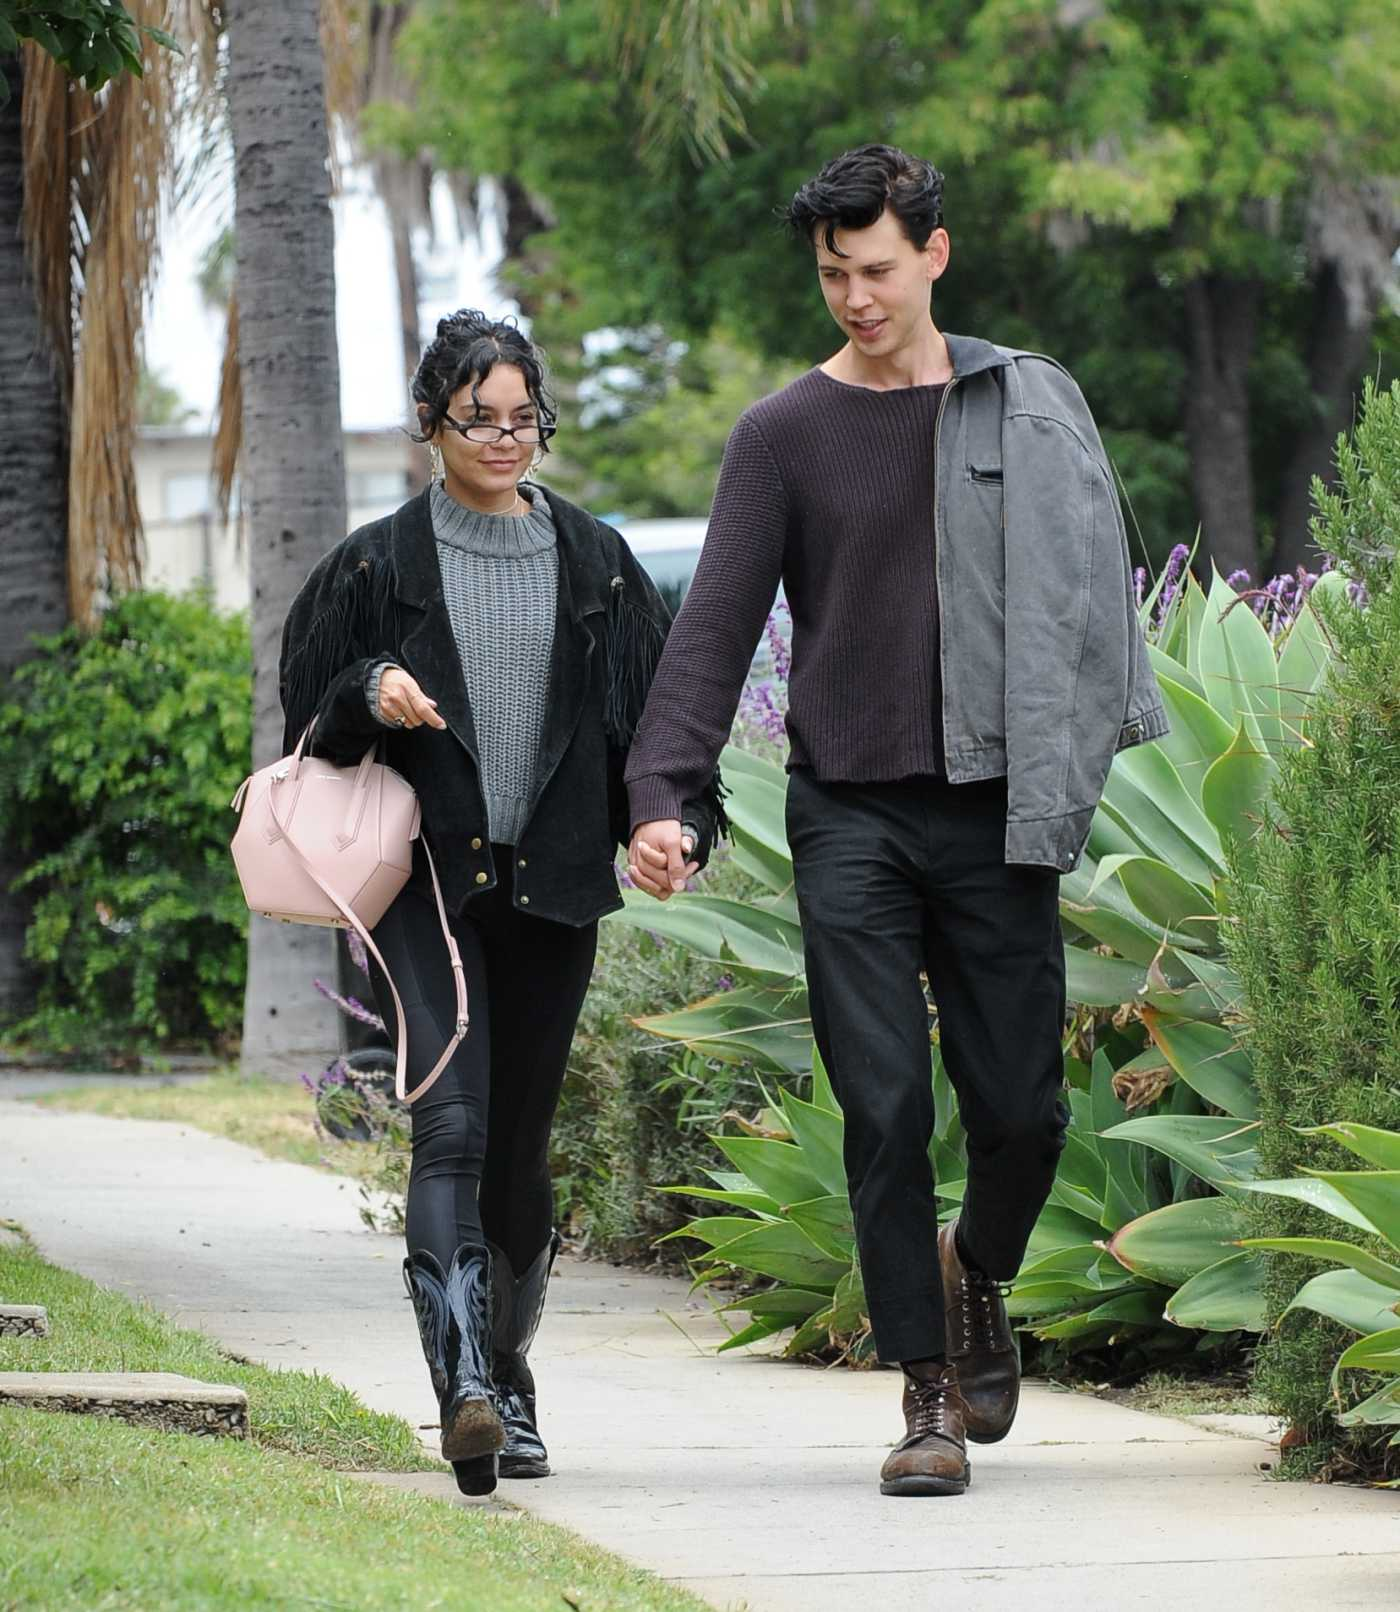 Vanessa Hudgens in a Black Jacket Was Seen Out with Austin Butler in Los Angeles 05/19/2019